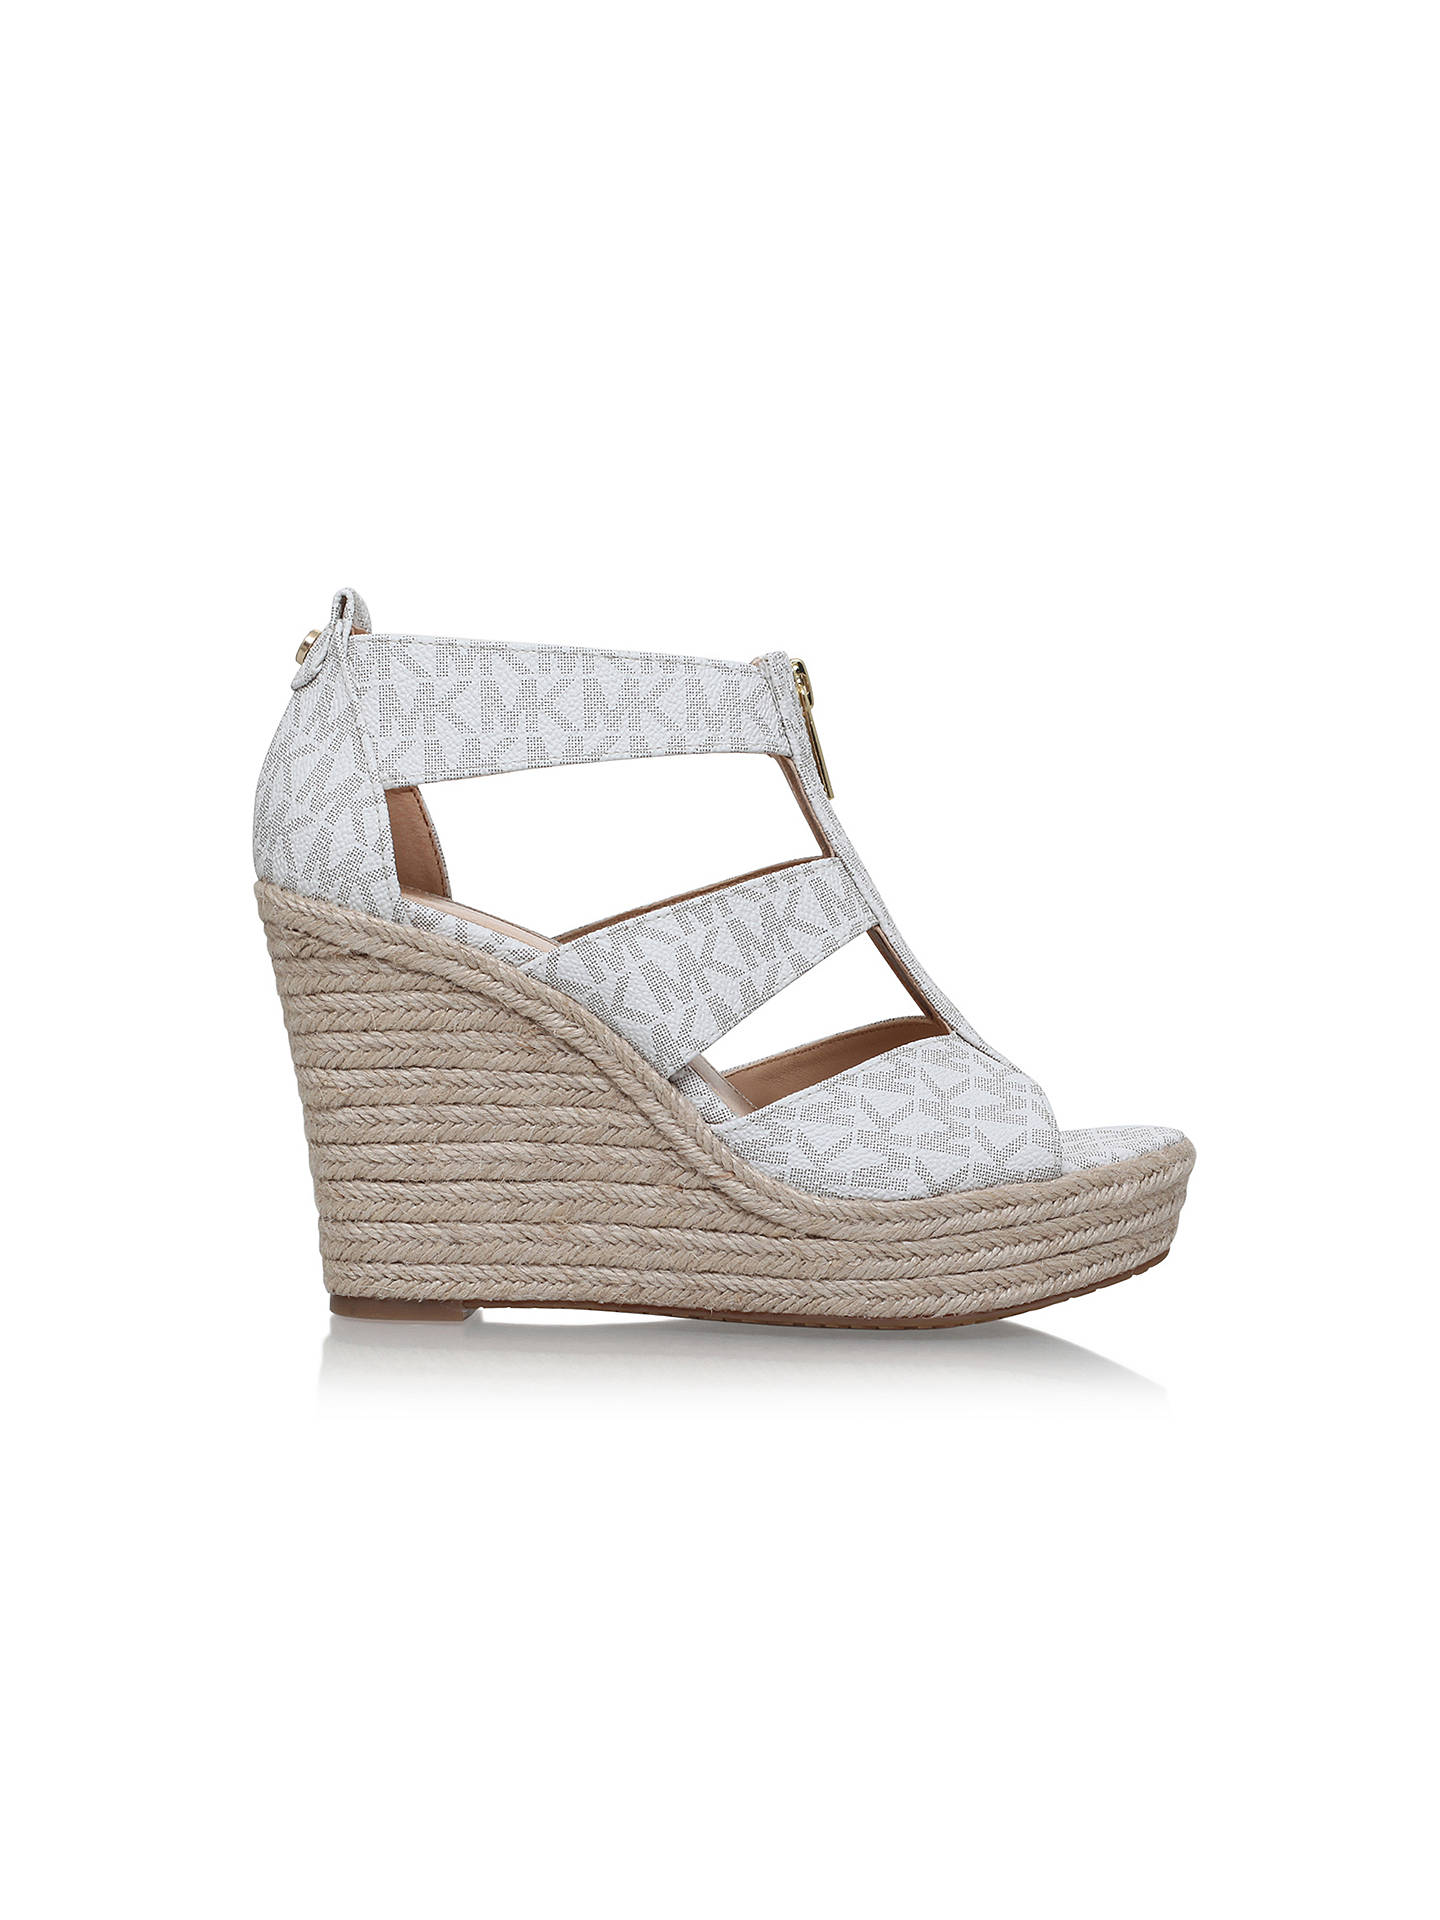 c6a588e1b3f8 MICHAEL Michael Kors Damita Wedge Heeled Sandals at John Lewis ...